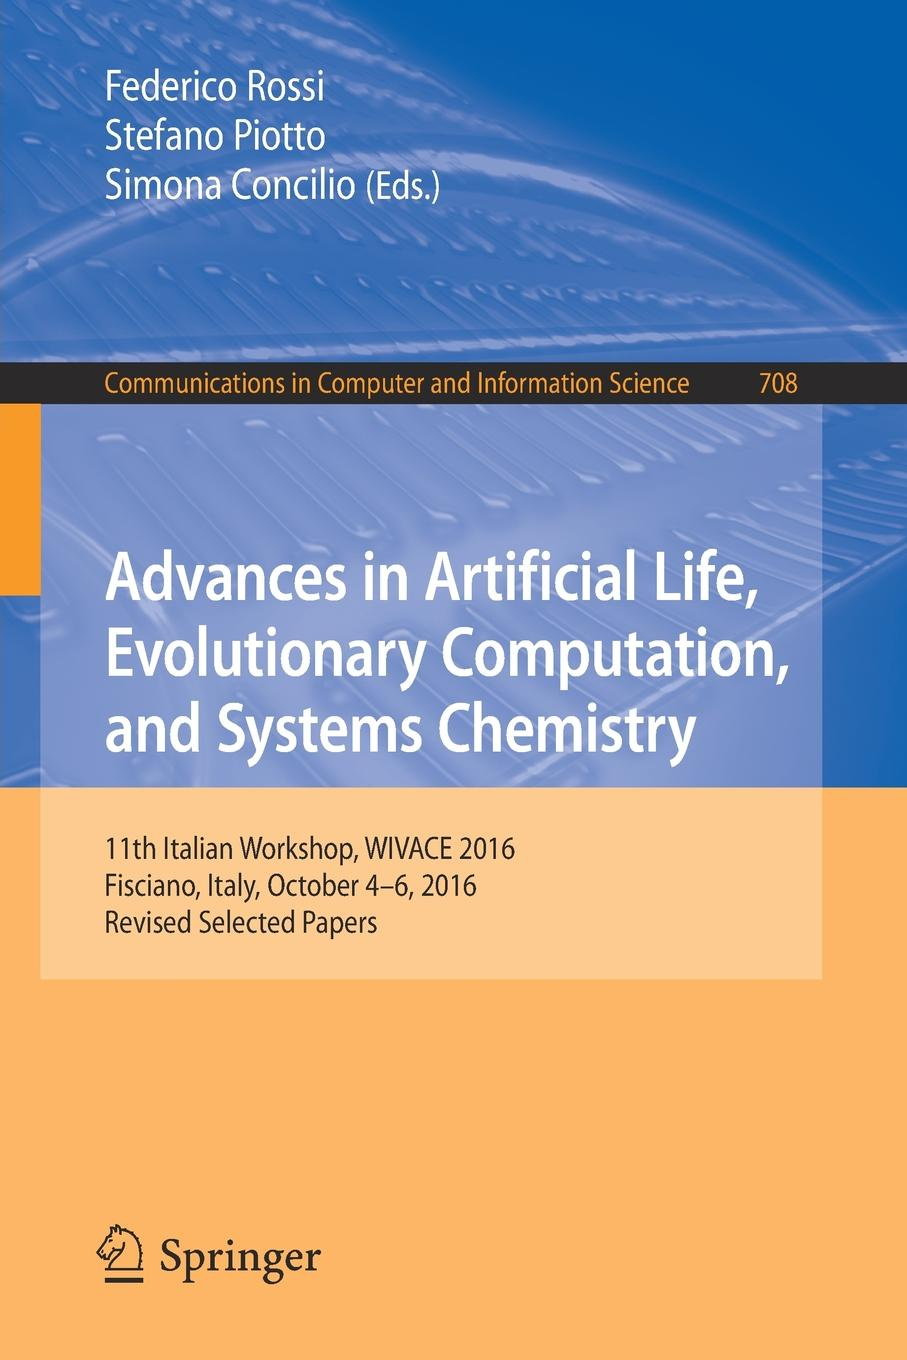 Advances in Artificial Life, Evolutionary Computation, and Systems Chemistry. 11th Italian Workshop, WIVACE 2016, Fisciano, Italy, October 4-6, 2016, Revised Selected Papers цена и фото